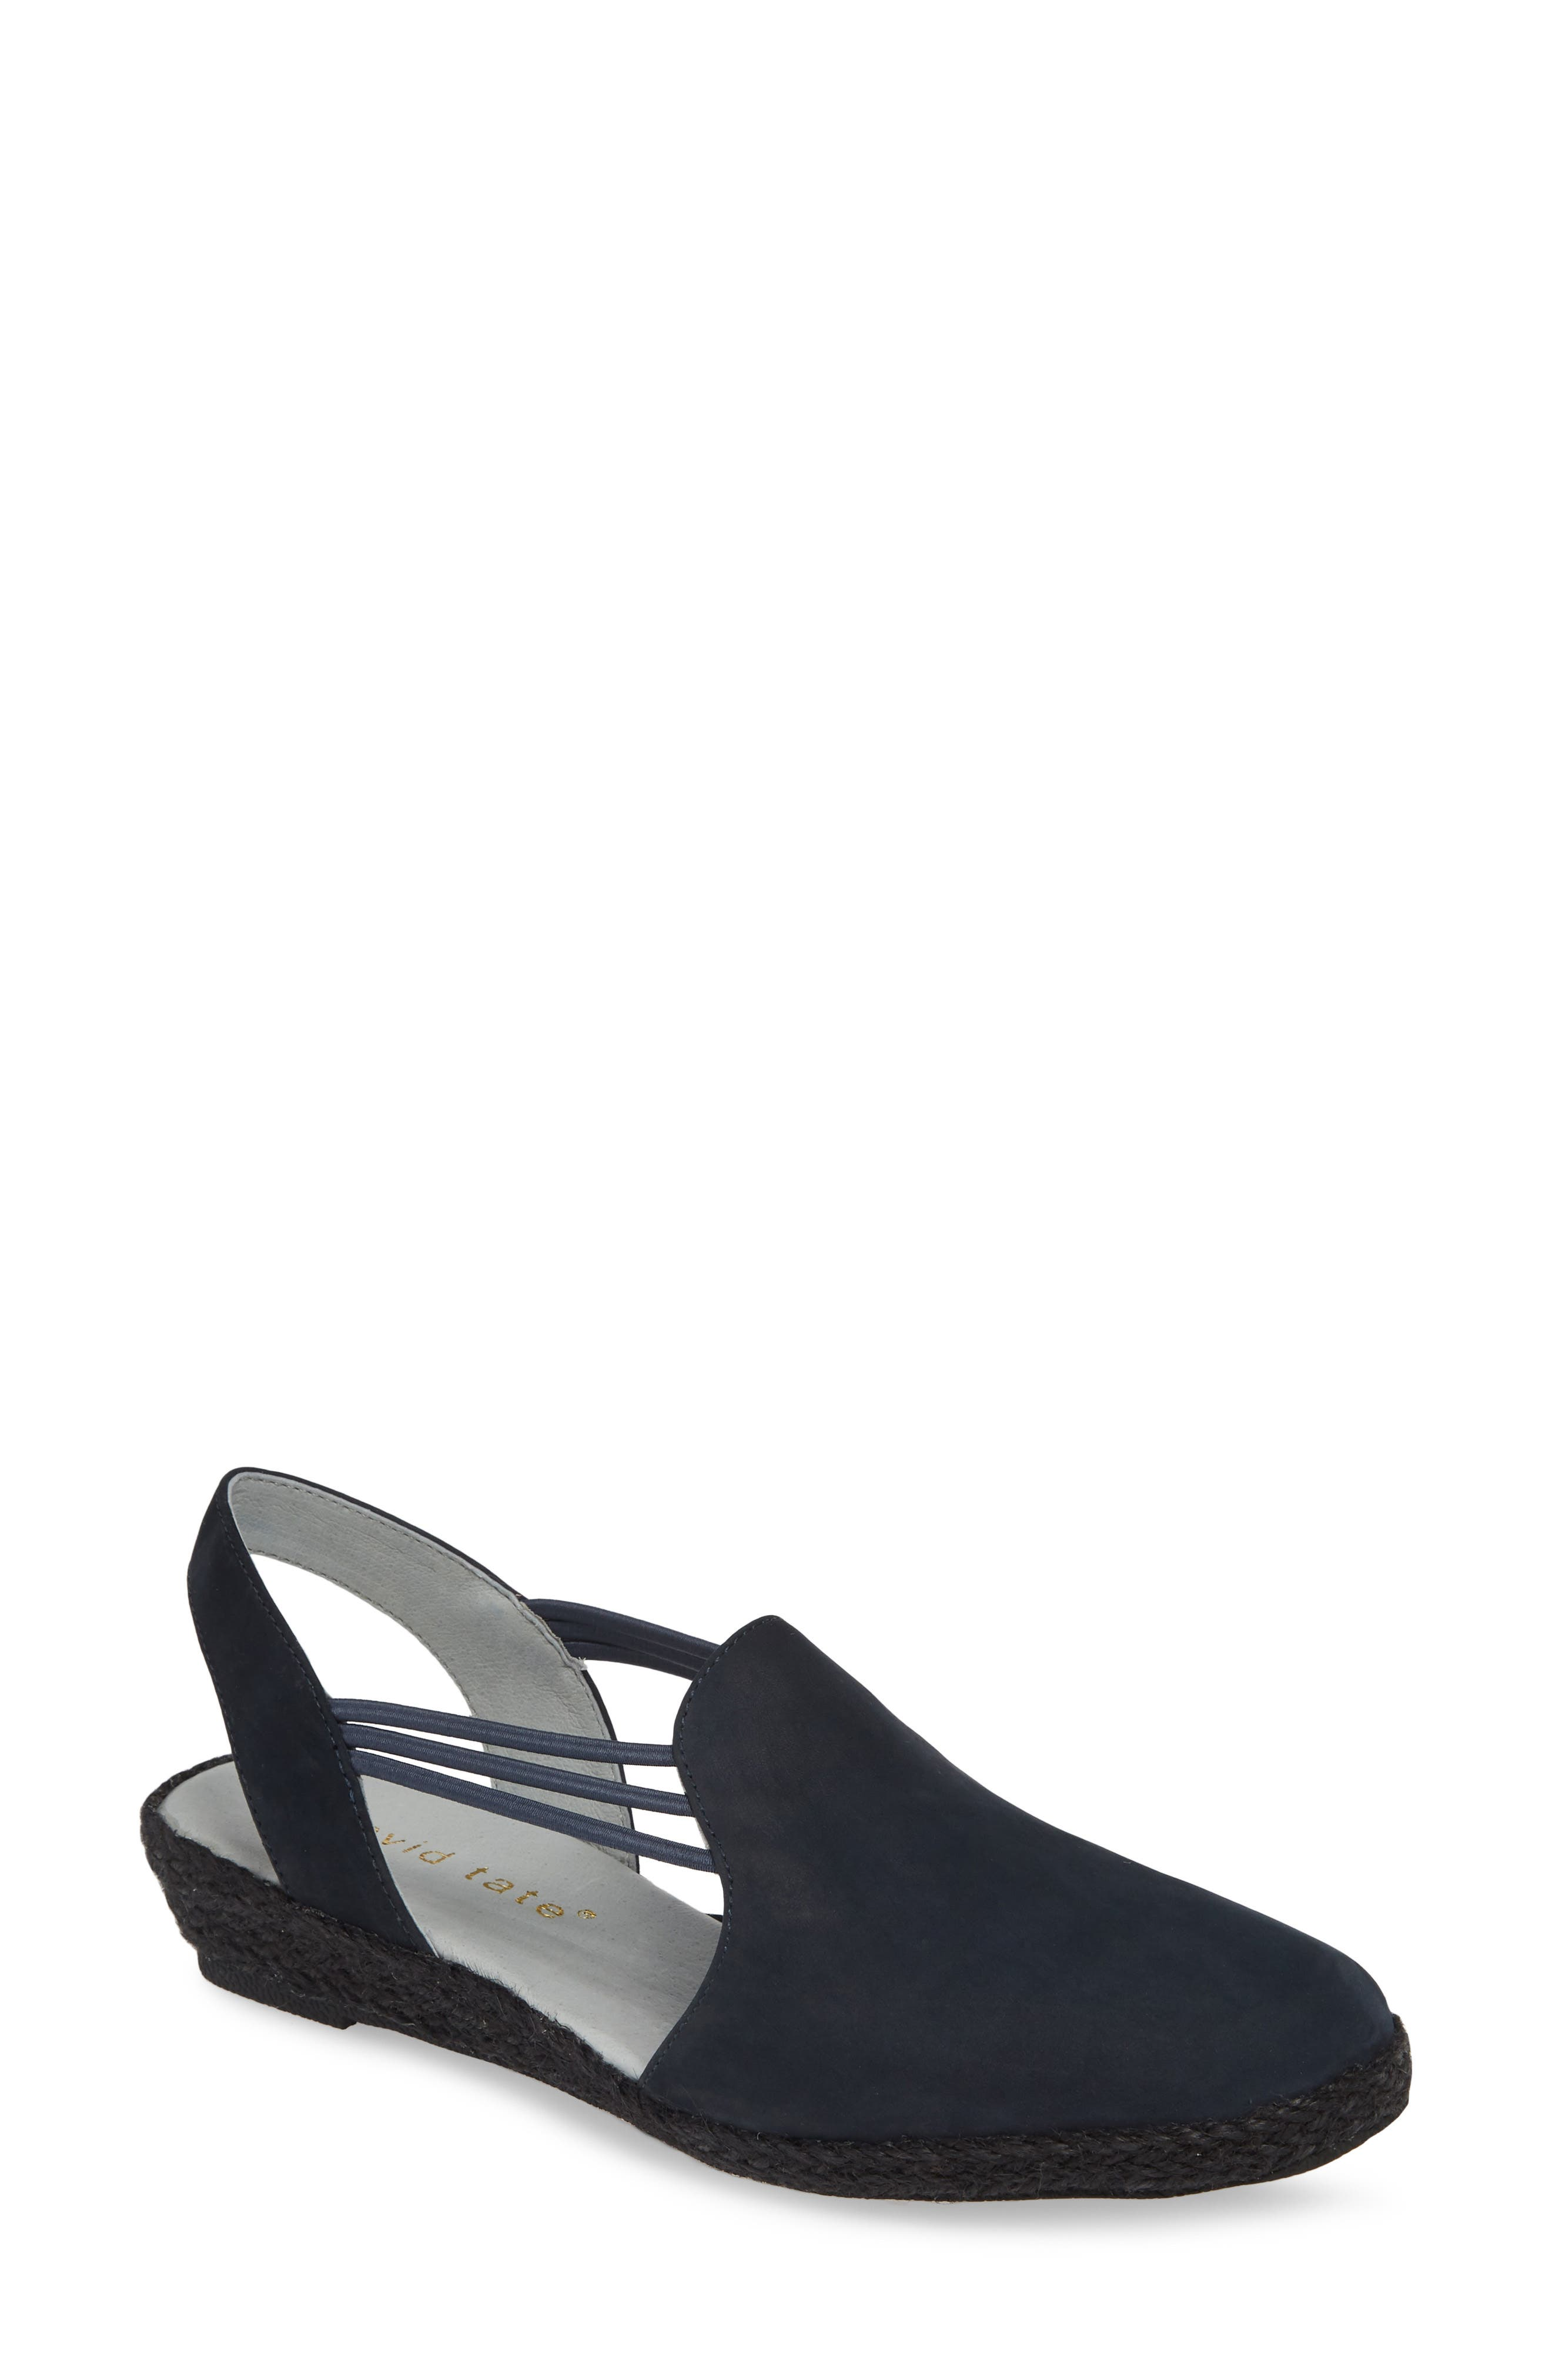 DAVID TATE,                             'Nelly' Slingback Wedge Sandal,                             Main thumbnail 1, color,                             NAVY NUBUCK LEATHER